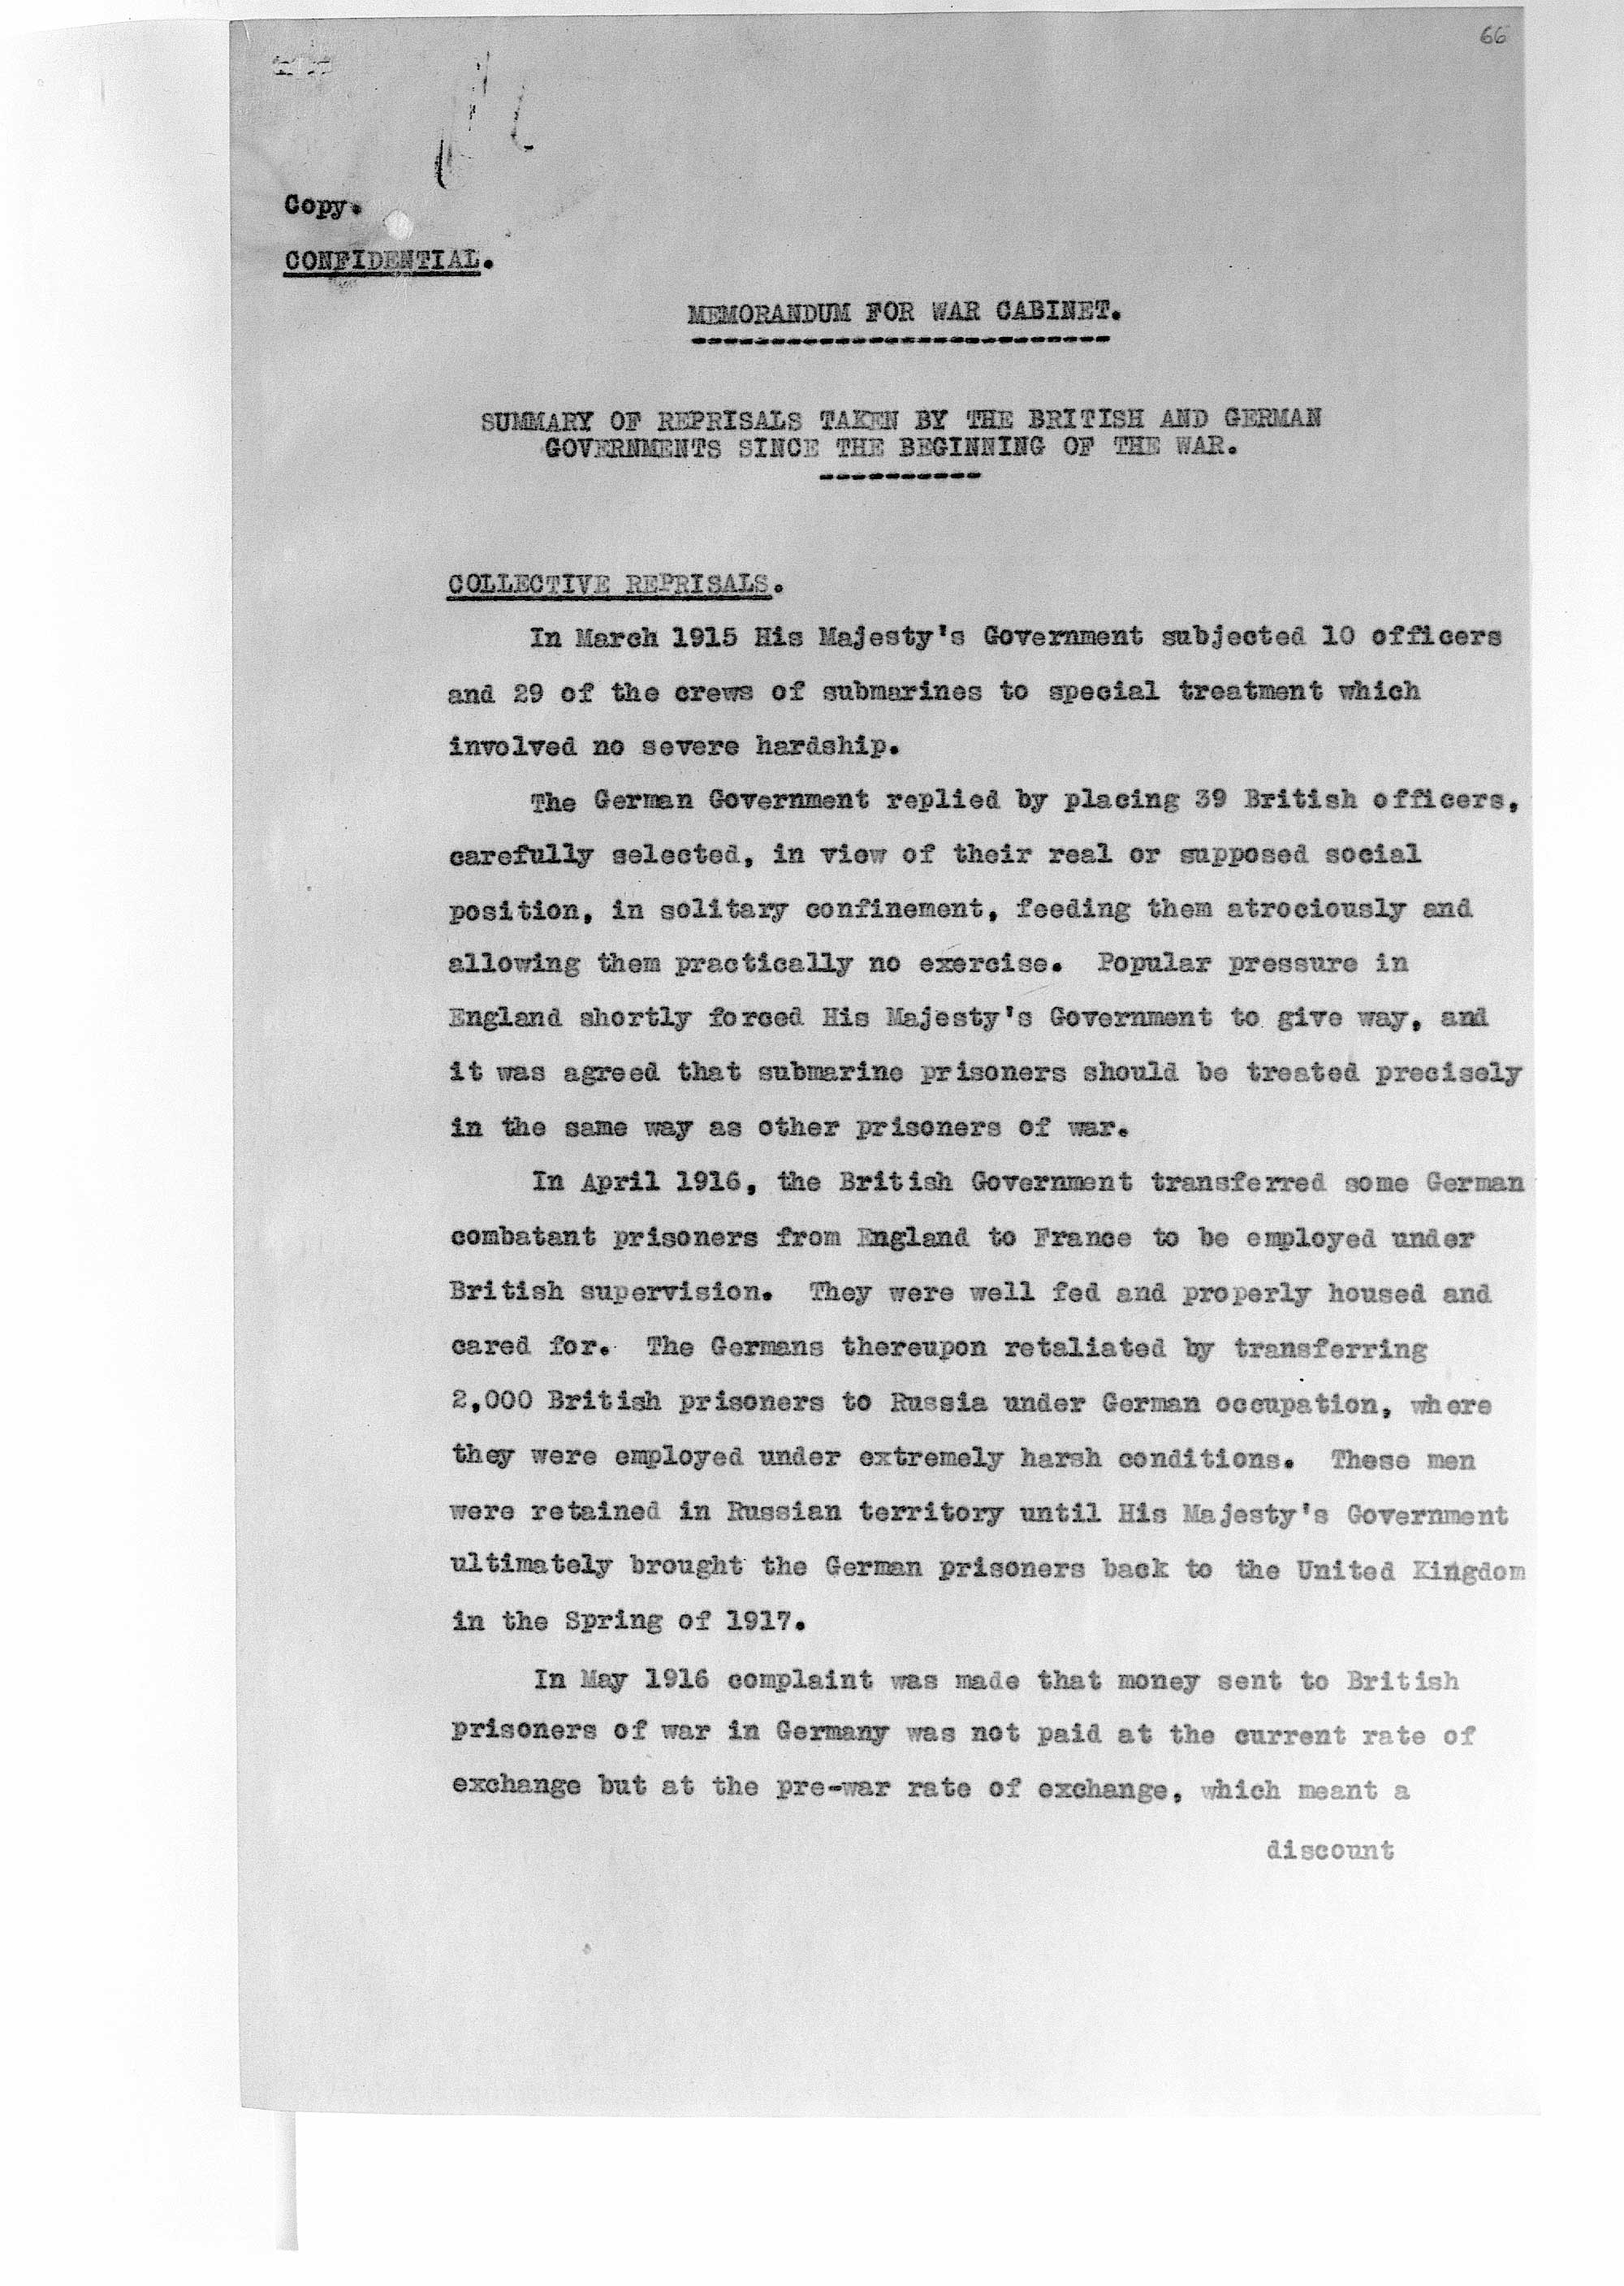 Memorandum for War Cabinet. Summary of reprisals taken by British and German governments since the beginning of the war (Cave Papers)